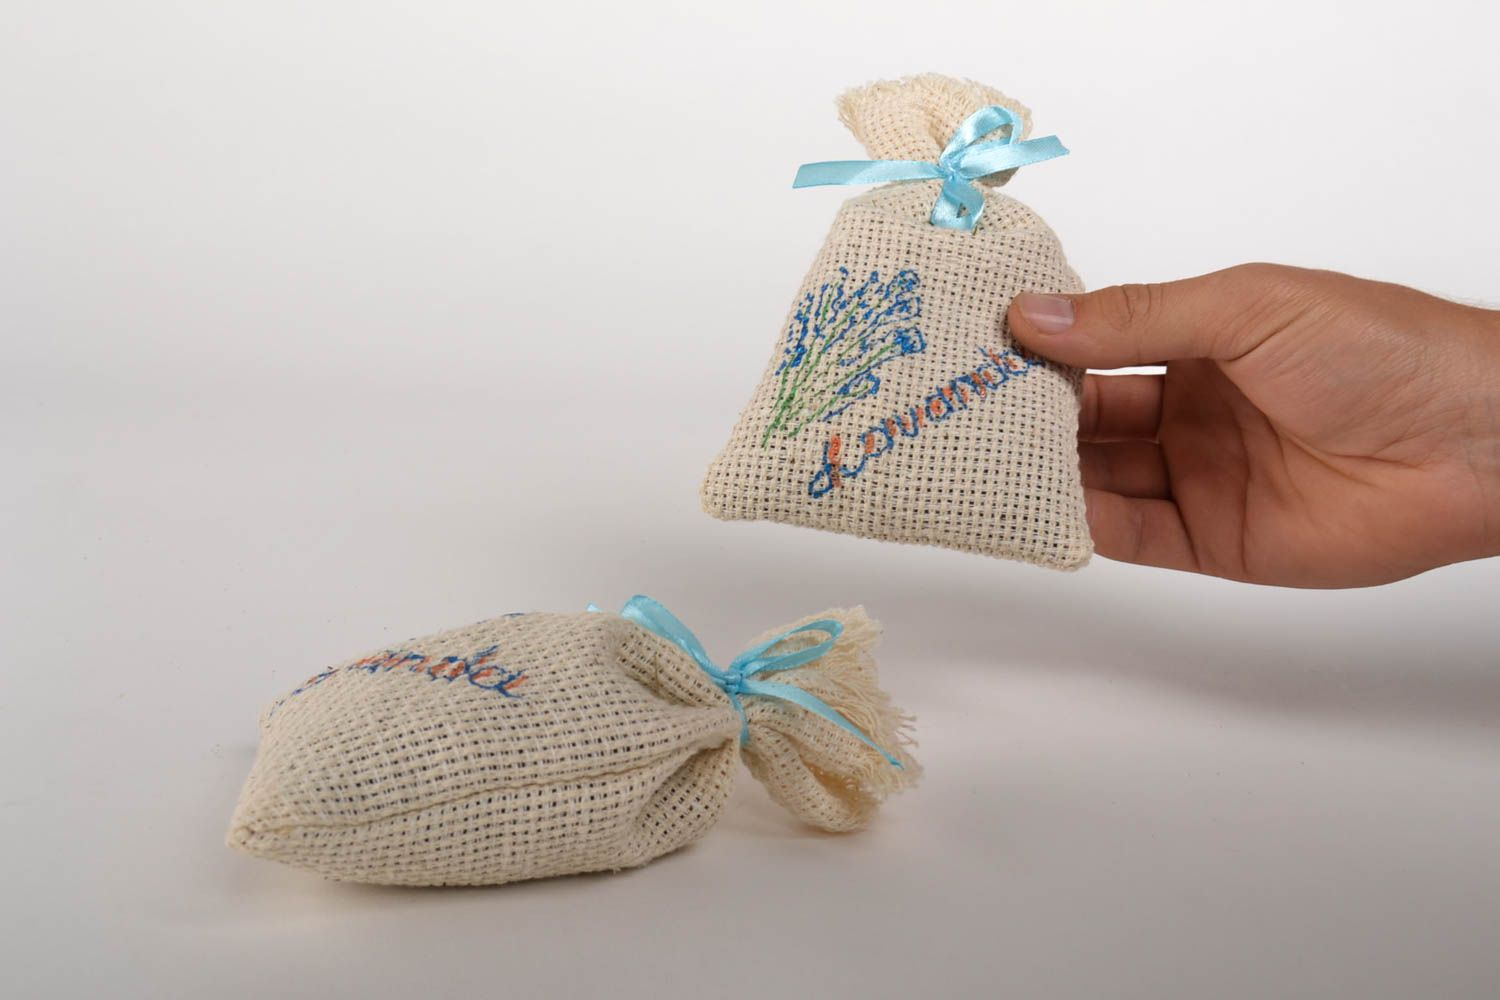 Handmade sachet bag with herbs home design aromatherapy at home small gifts photo 5